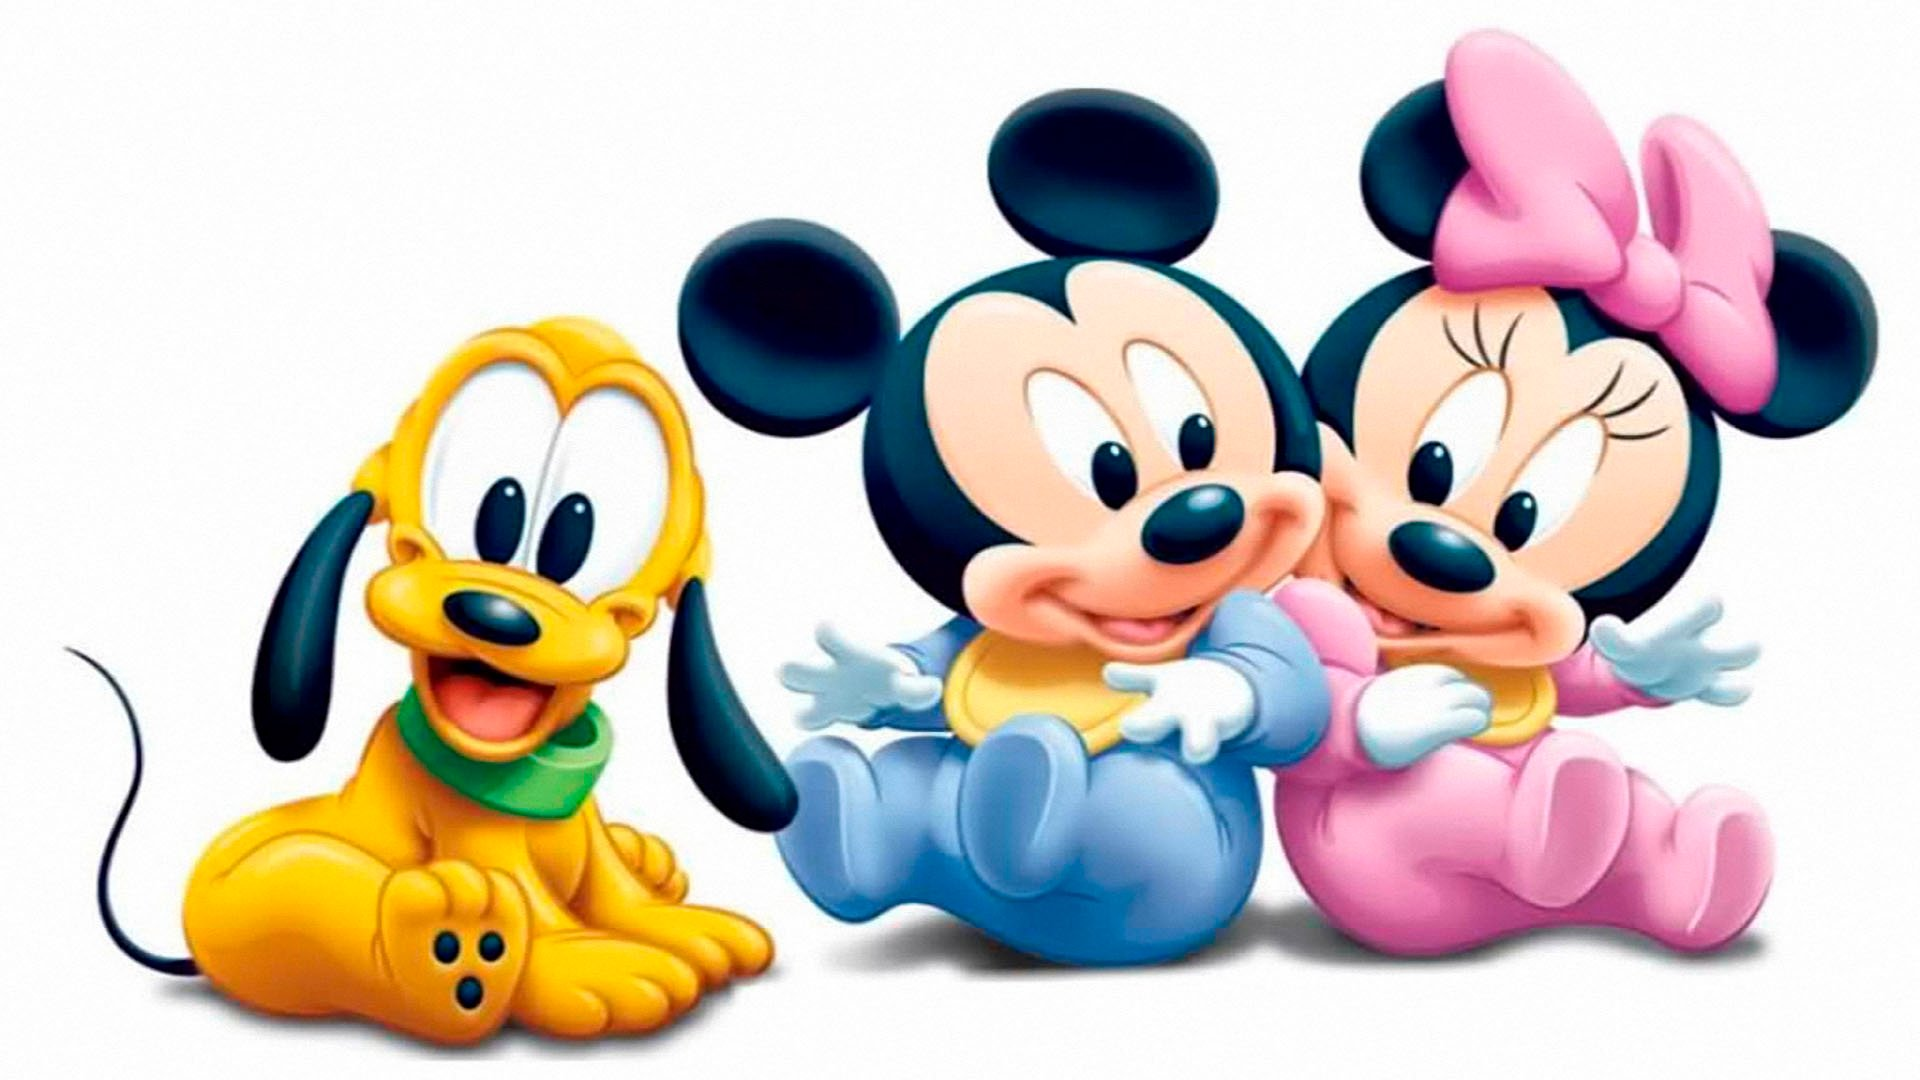 Bebes Disney wallpaper hd Wallpaper Hd   Fondos de pantalla HD High 1920x1080